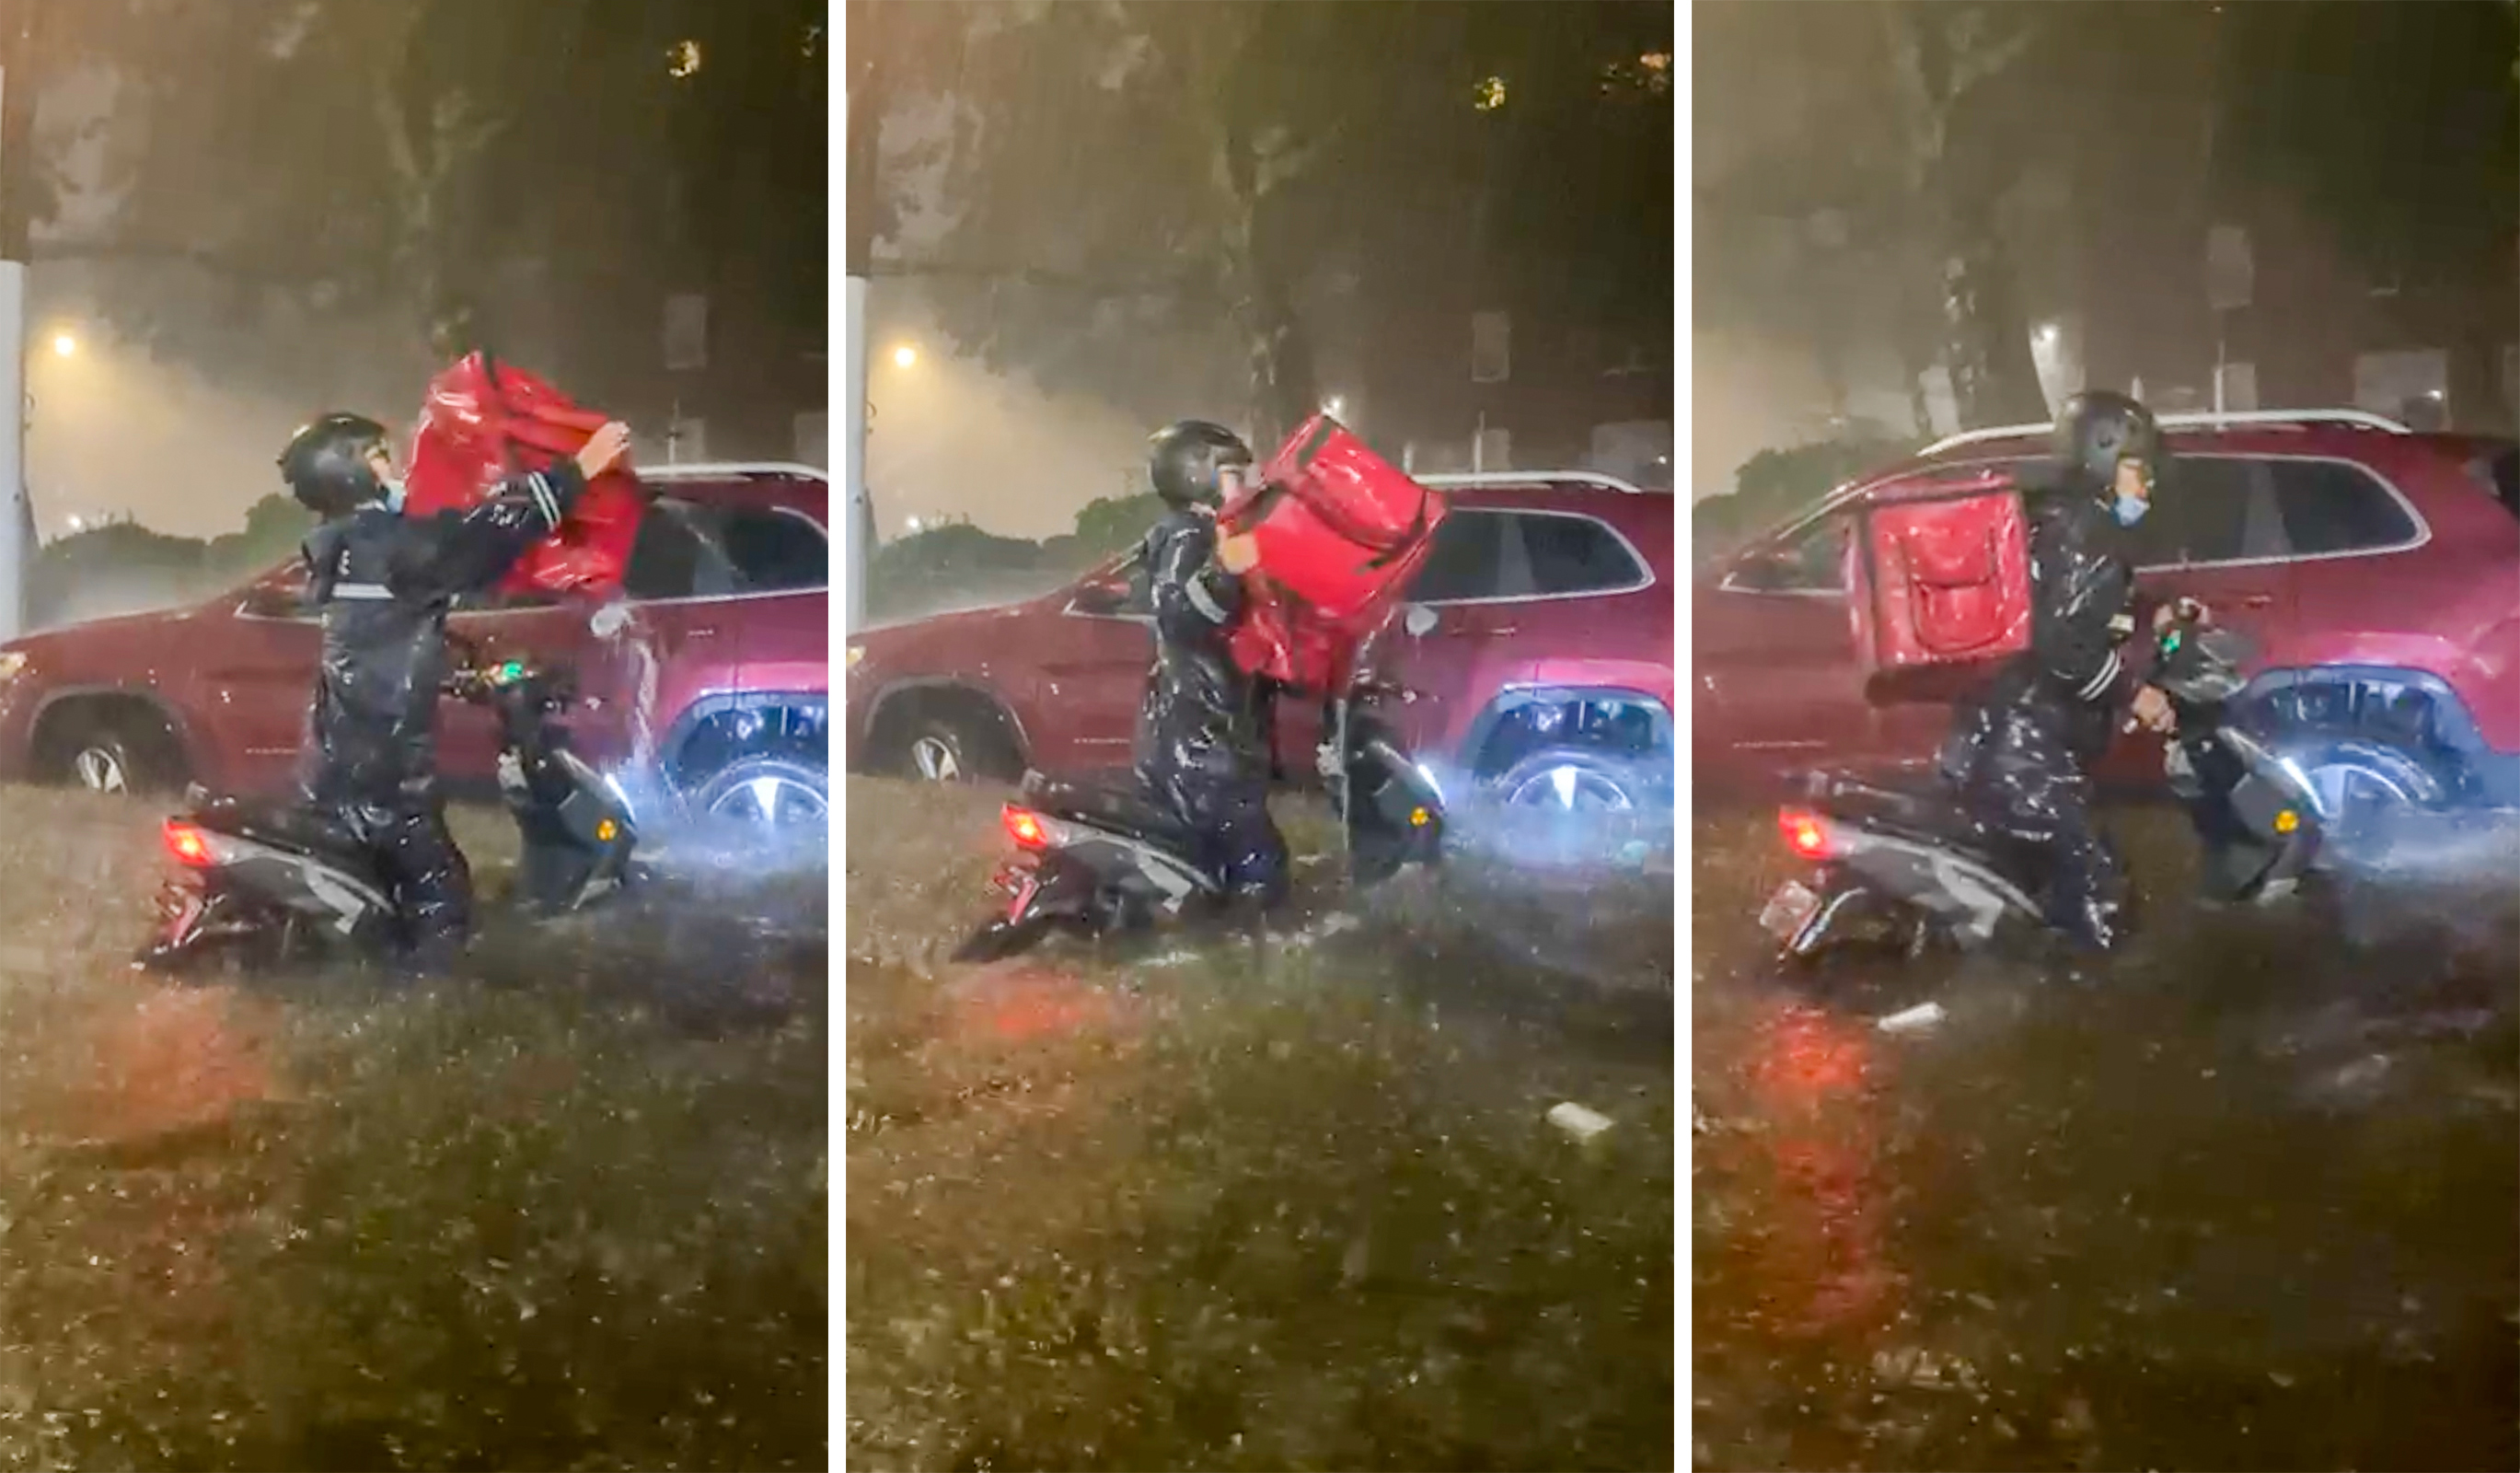 Delivery workers in Astoria toiled in waist-deep water for less than $12 an hour as the remnants of Hurricane Ida poured over the region Wednesday night.